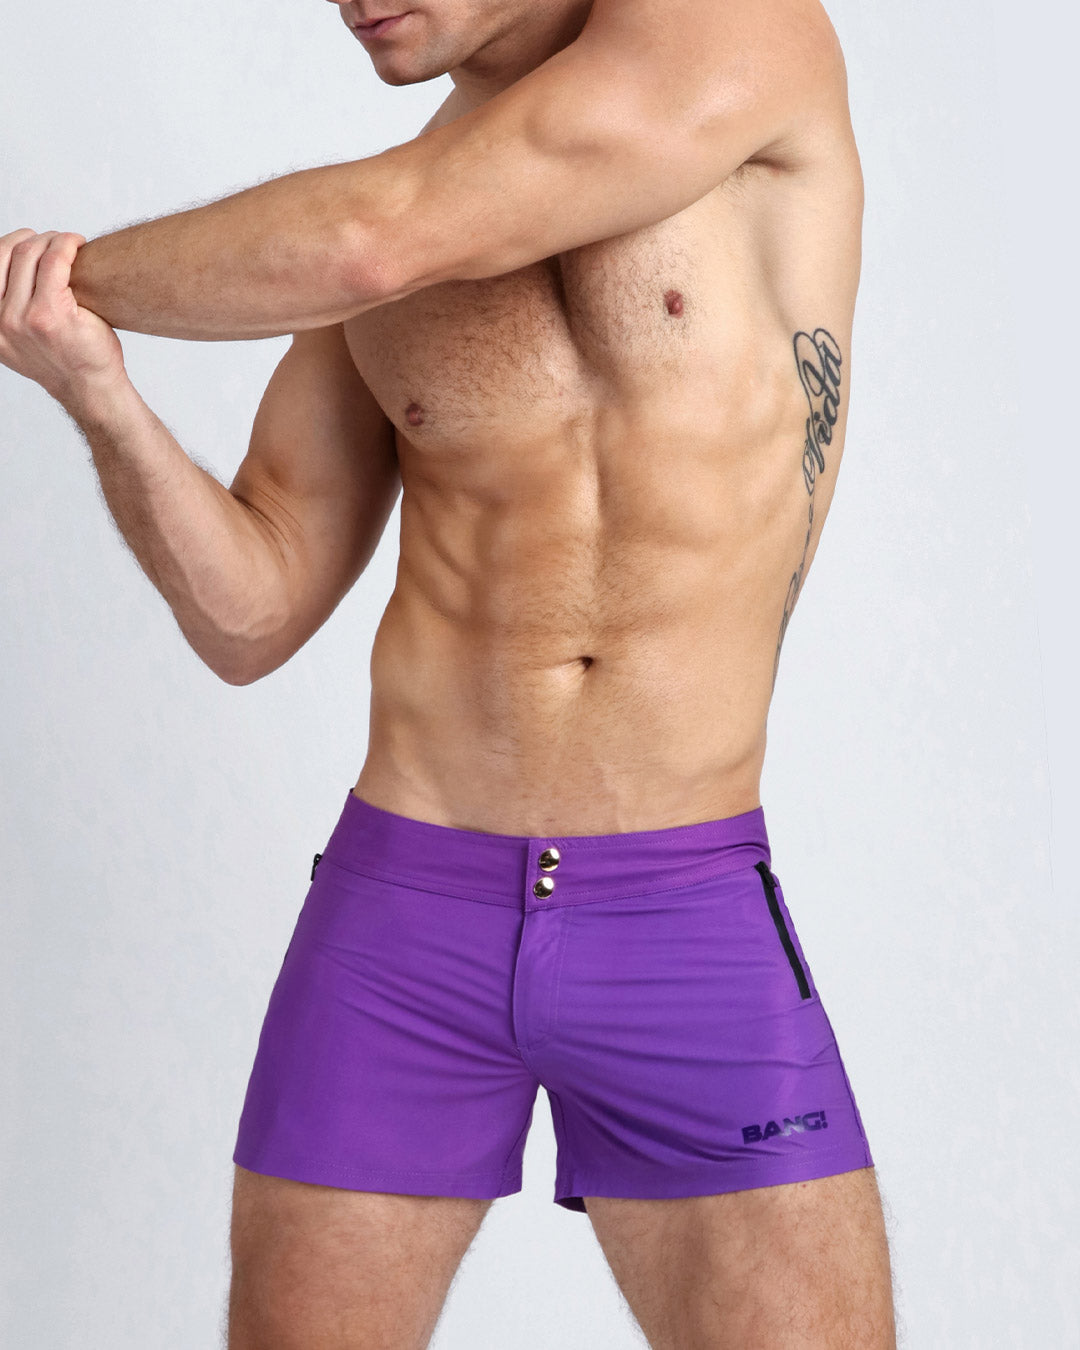 Frontal view of a sexy male model wearing men's beach shorts in purple violet color by the Bang! Menswear brand from Miami.